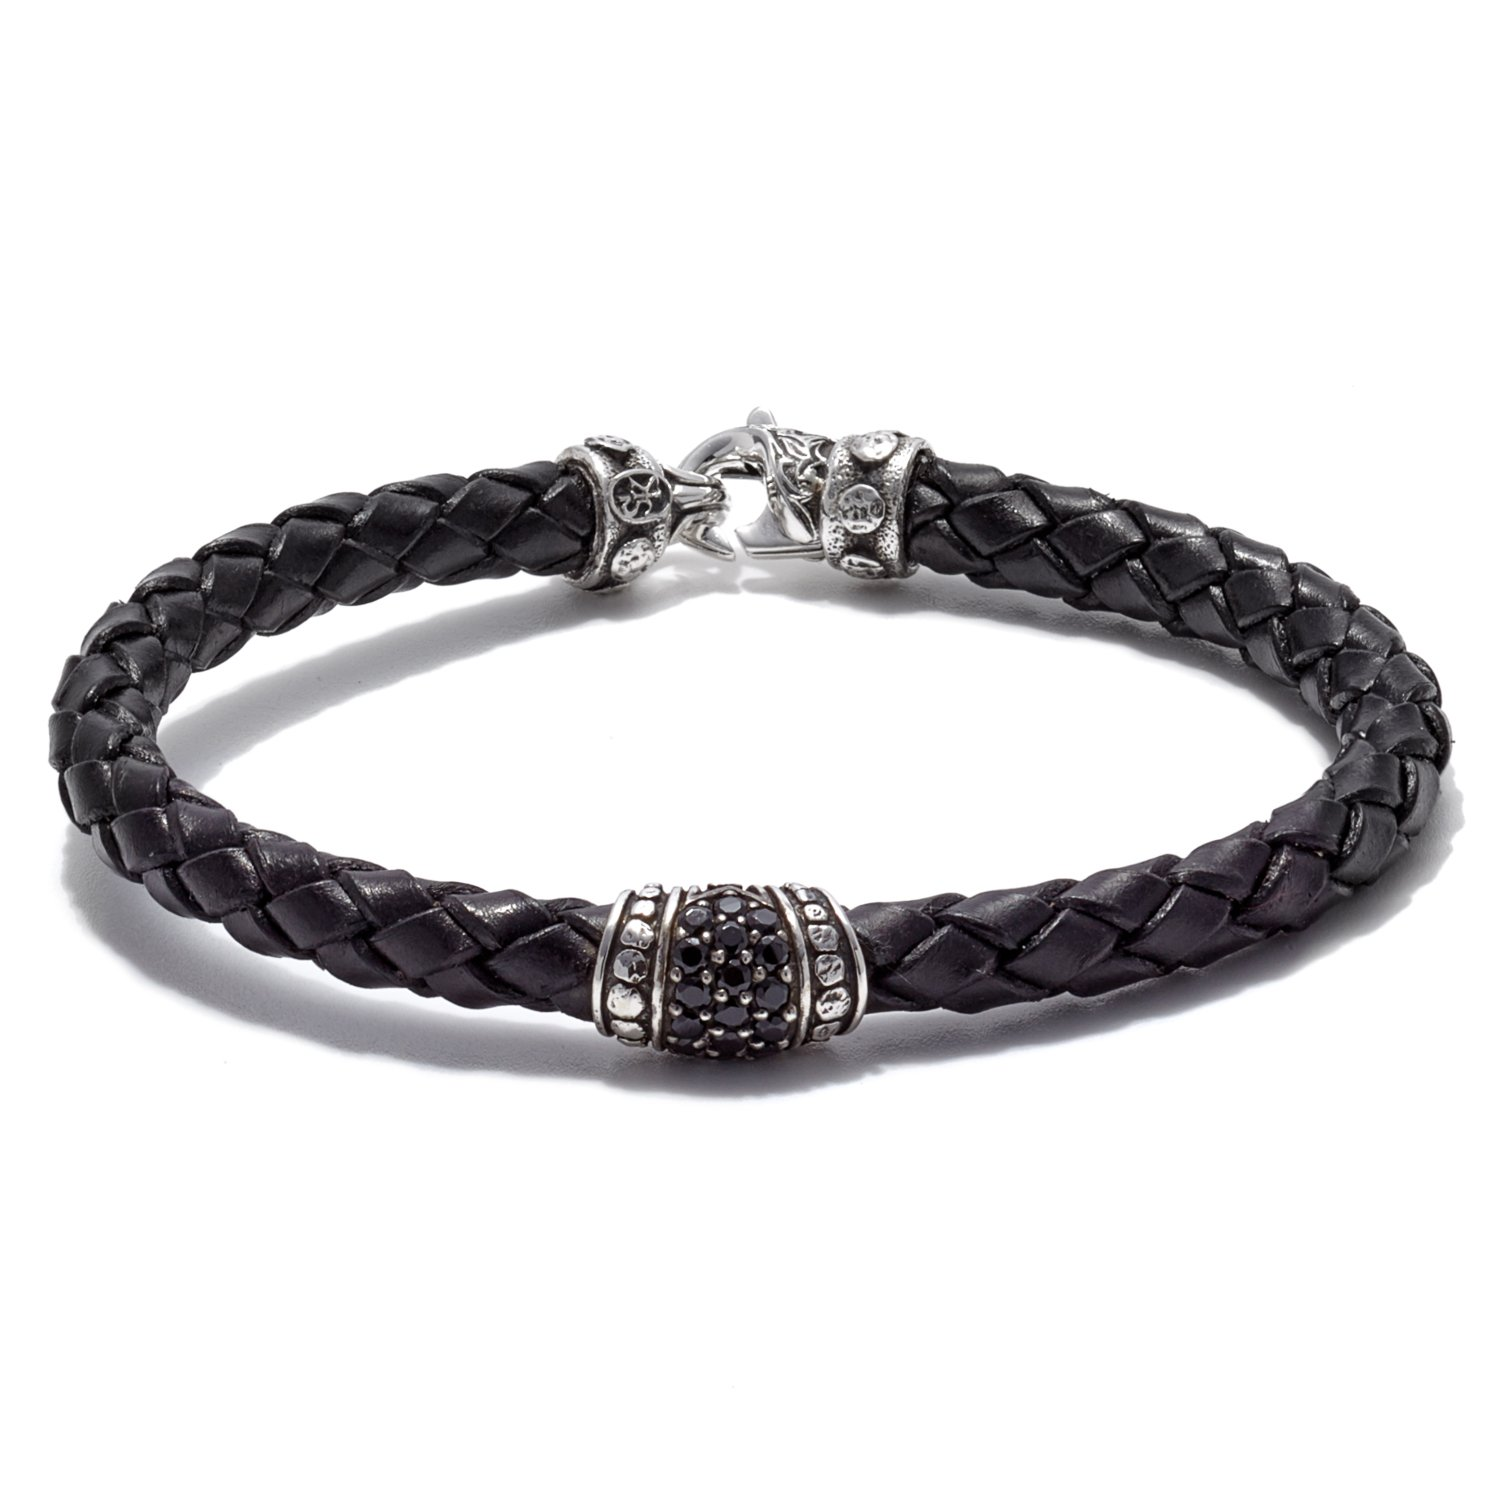 Scott Kay Sparta Collection Black Leather Bracelet, Pave Station Sterling Silver with Black Saphire 6mm, Size 8.5 inches